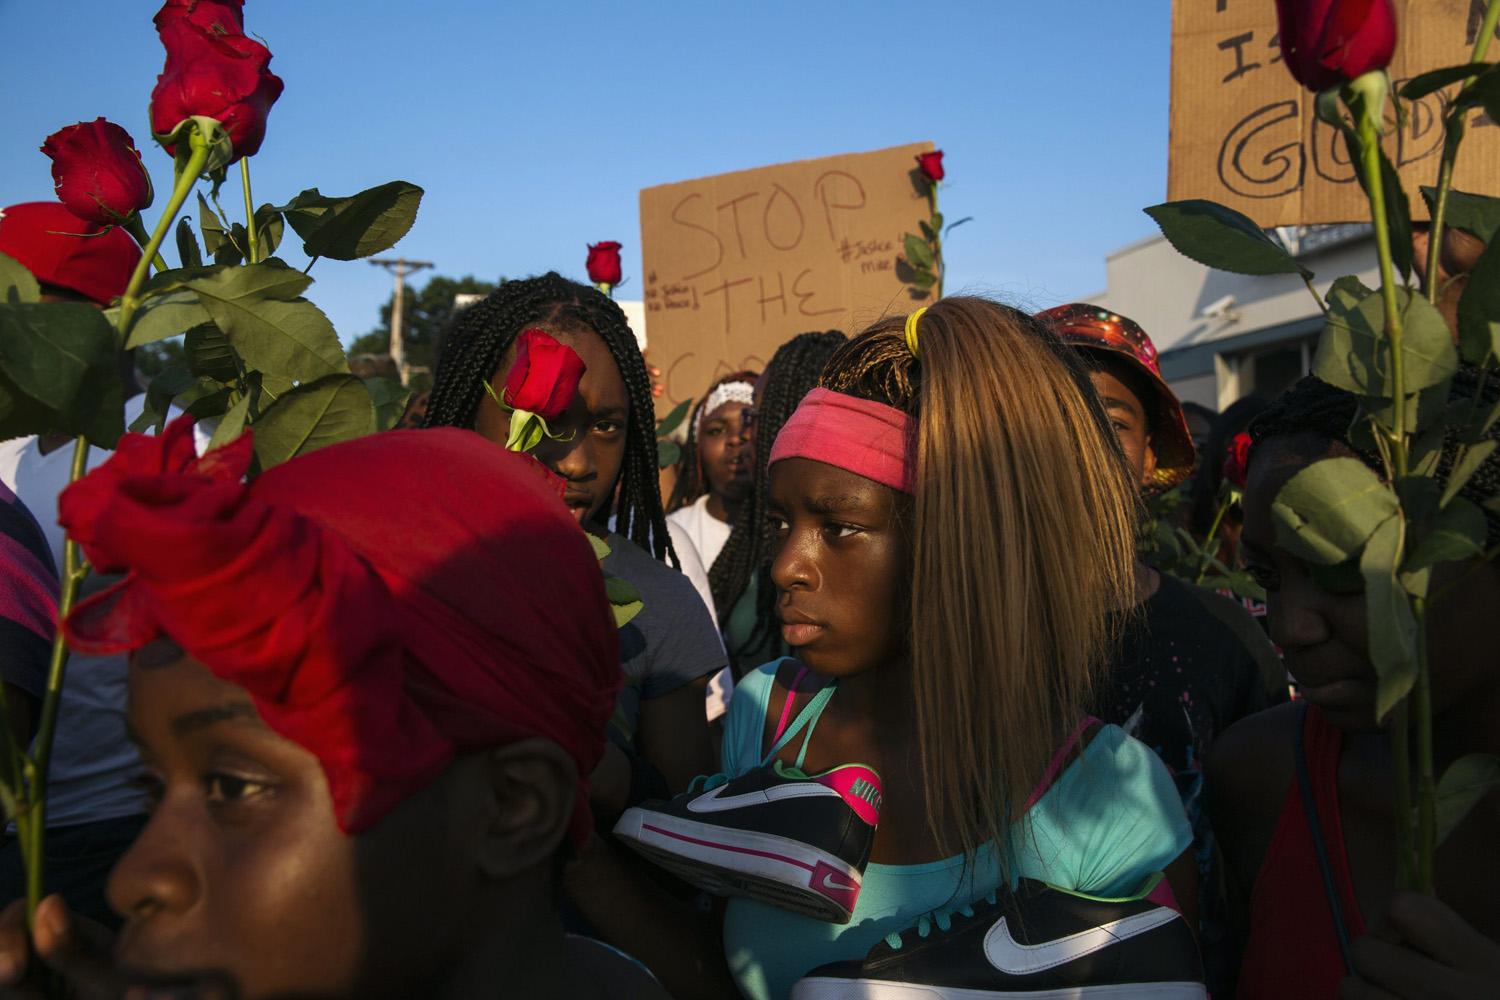 Aug. 18, 2014. Demonstrators march down West Florissant during a peaceful march in reaction to the shooting of Michael Brown, near Ferguson, Missouri.